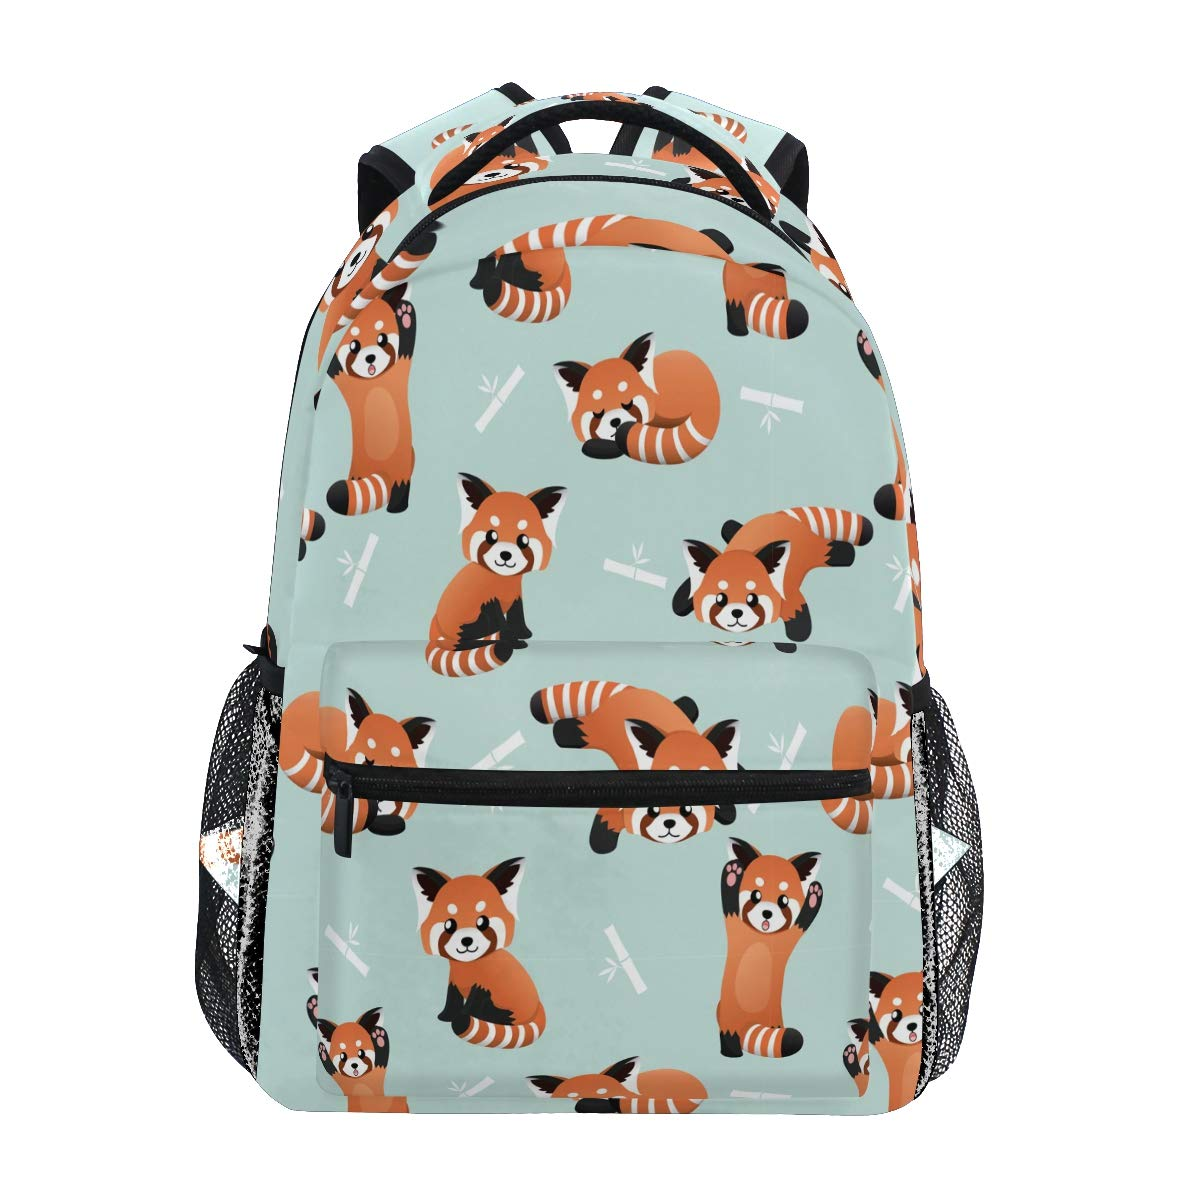 Large Capacity Backpack Outdoor Travel Daypacks with Pocket I Love Red Pandas